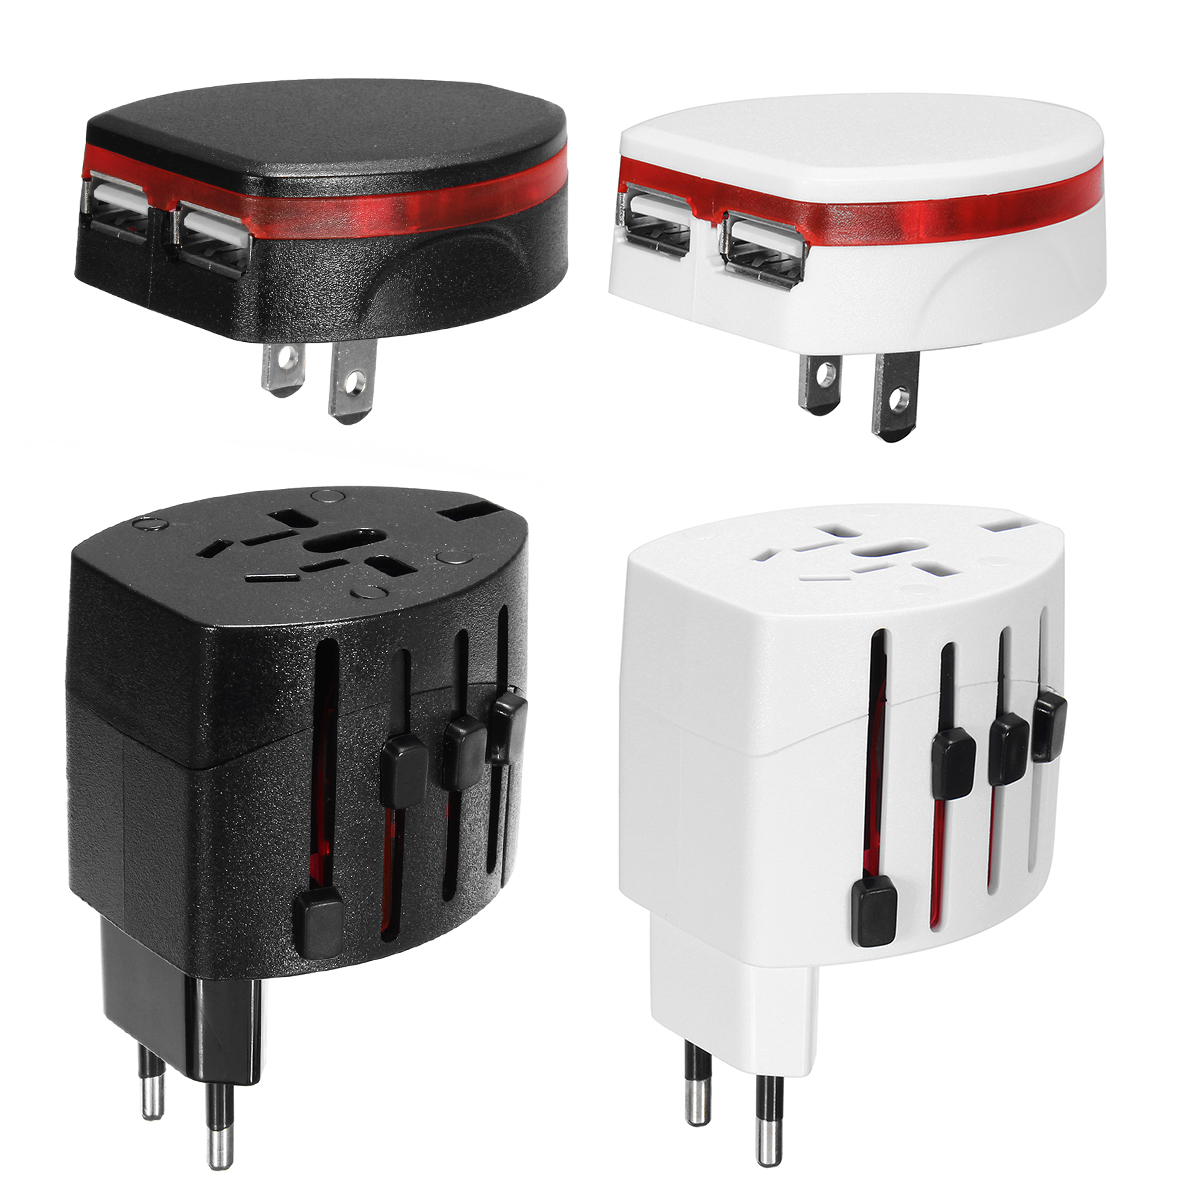 Universal Worldwide Travel Adapter Plug Double USB/AC Power Adaptor Charger